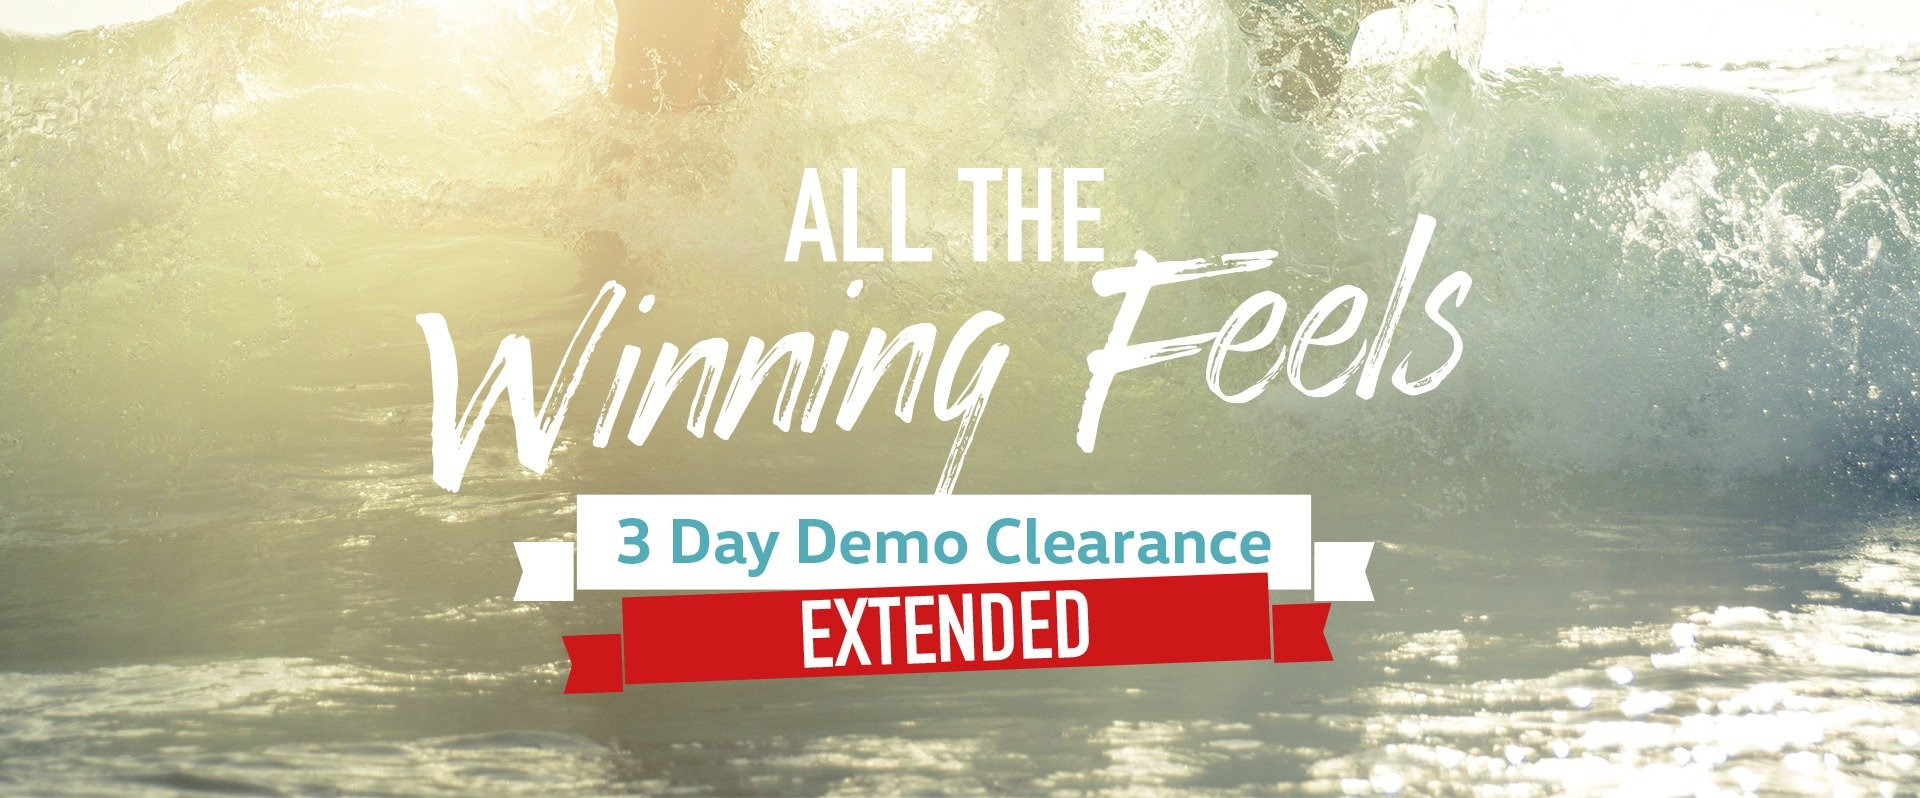 Receive an exclusive deal at Denlo Volkswagen. 3 Days Only